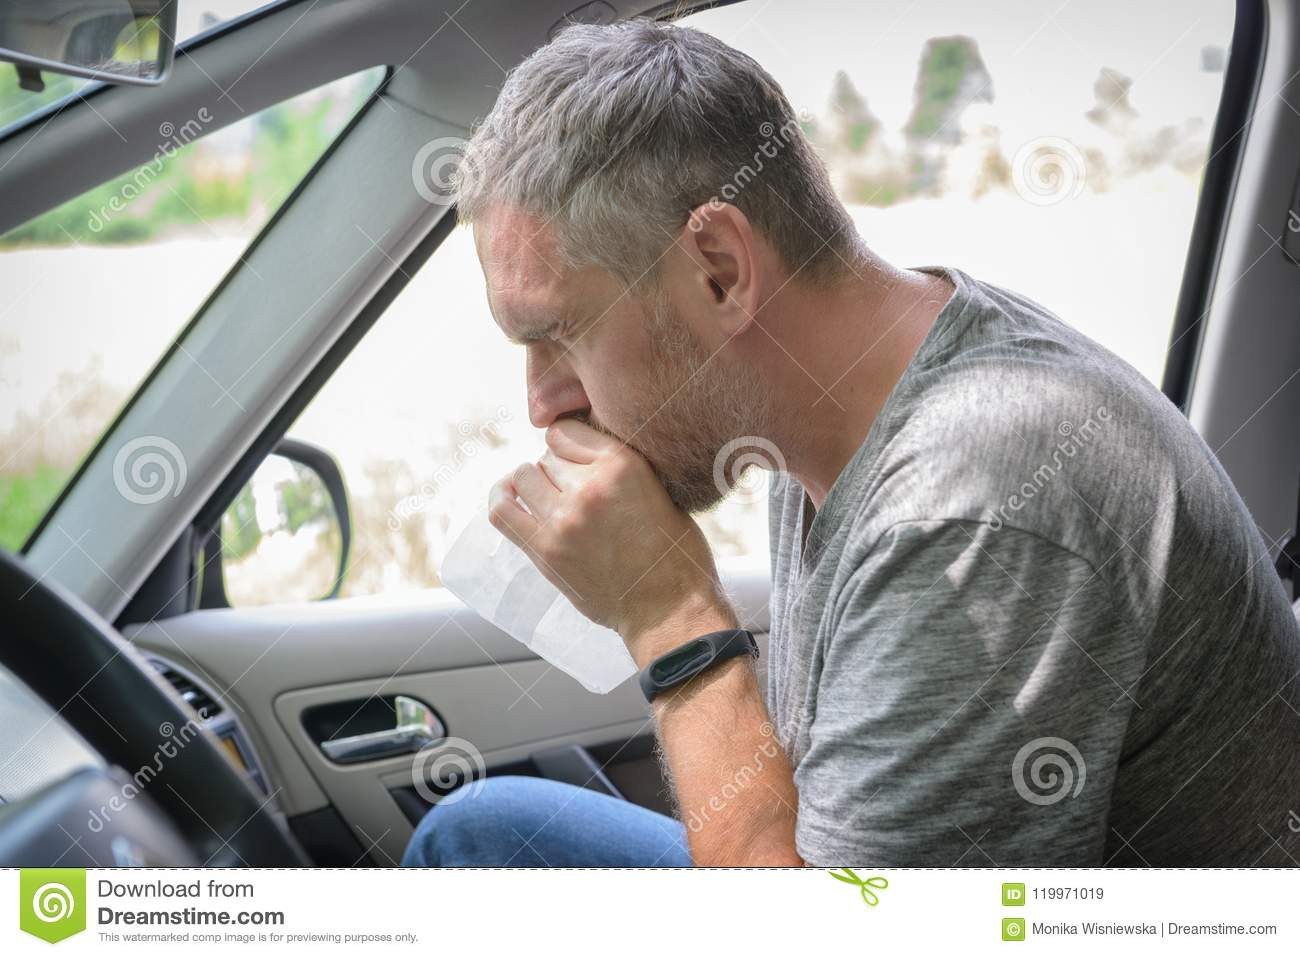 Man suffering from motion sickness